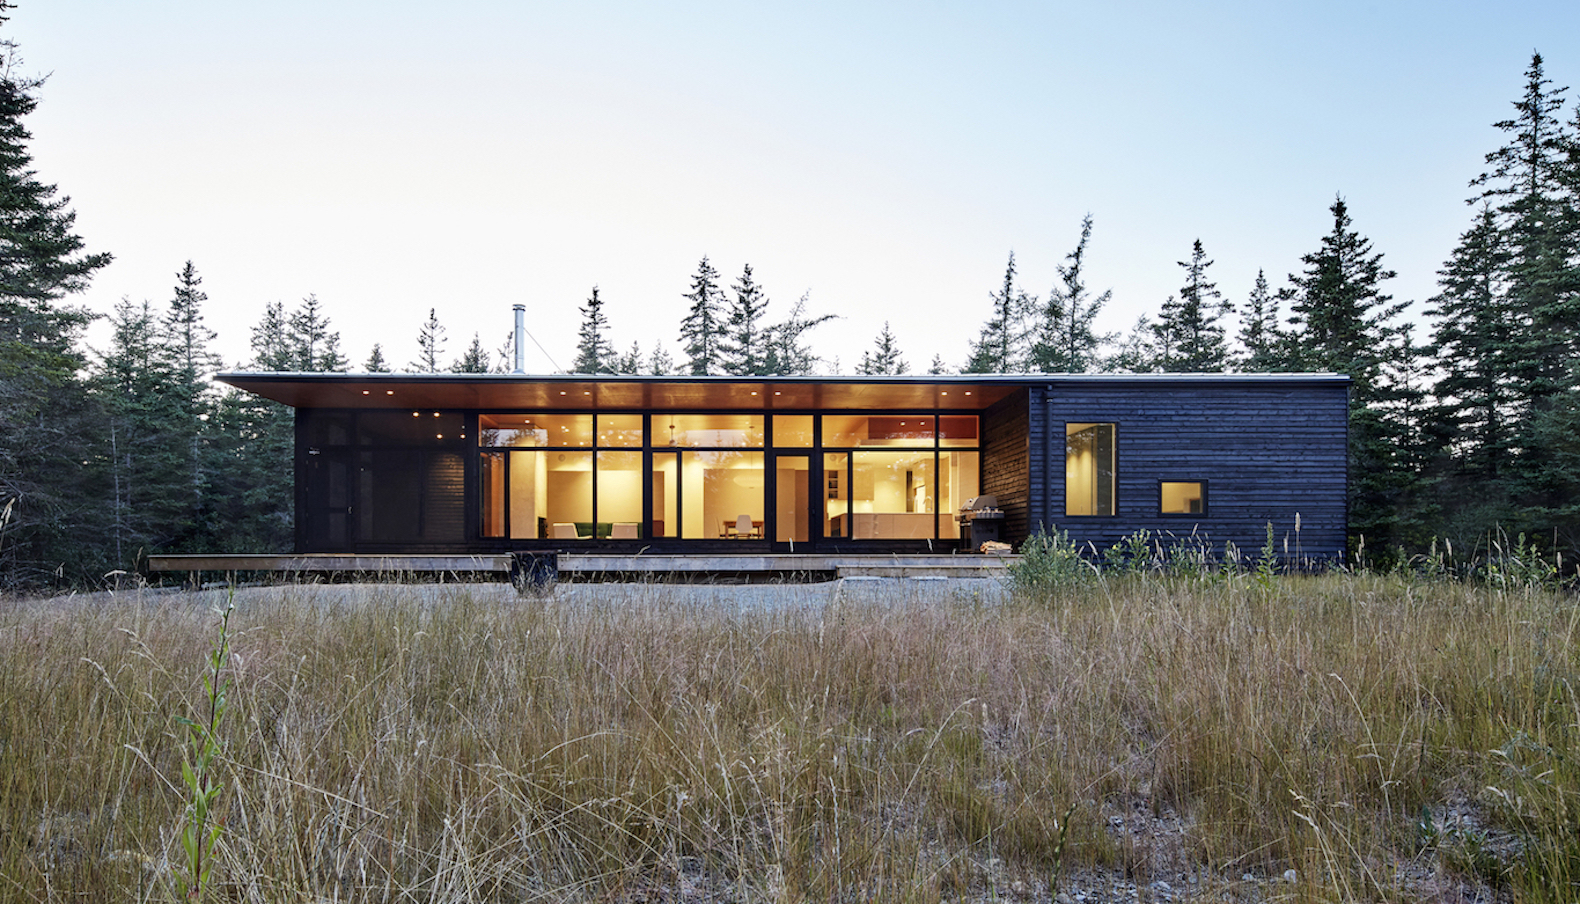 Passive Solar Lockeport Beach House Harvests Rainwater To Save Energy